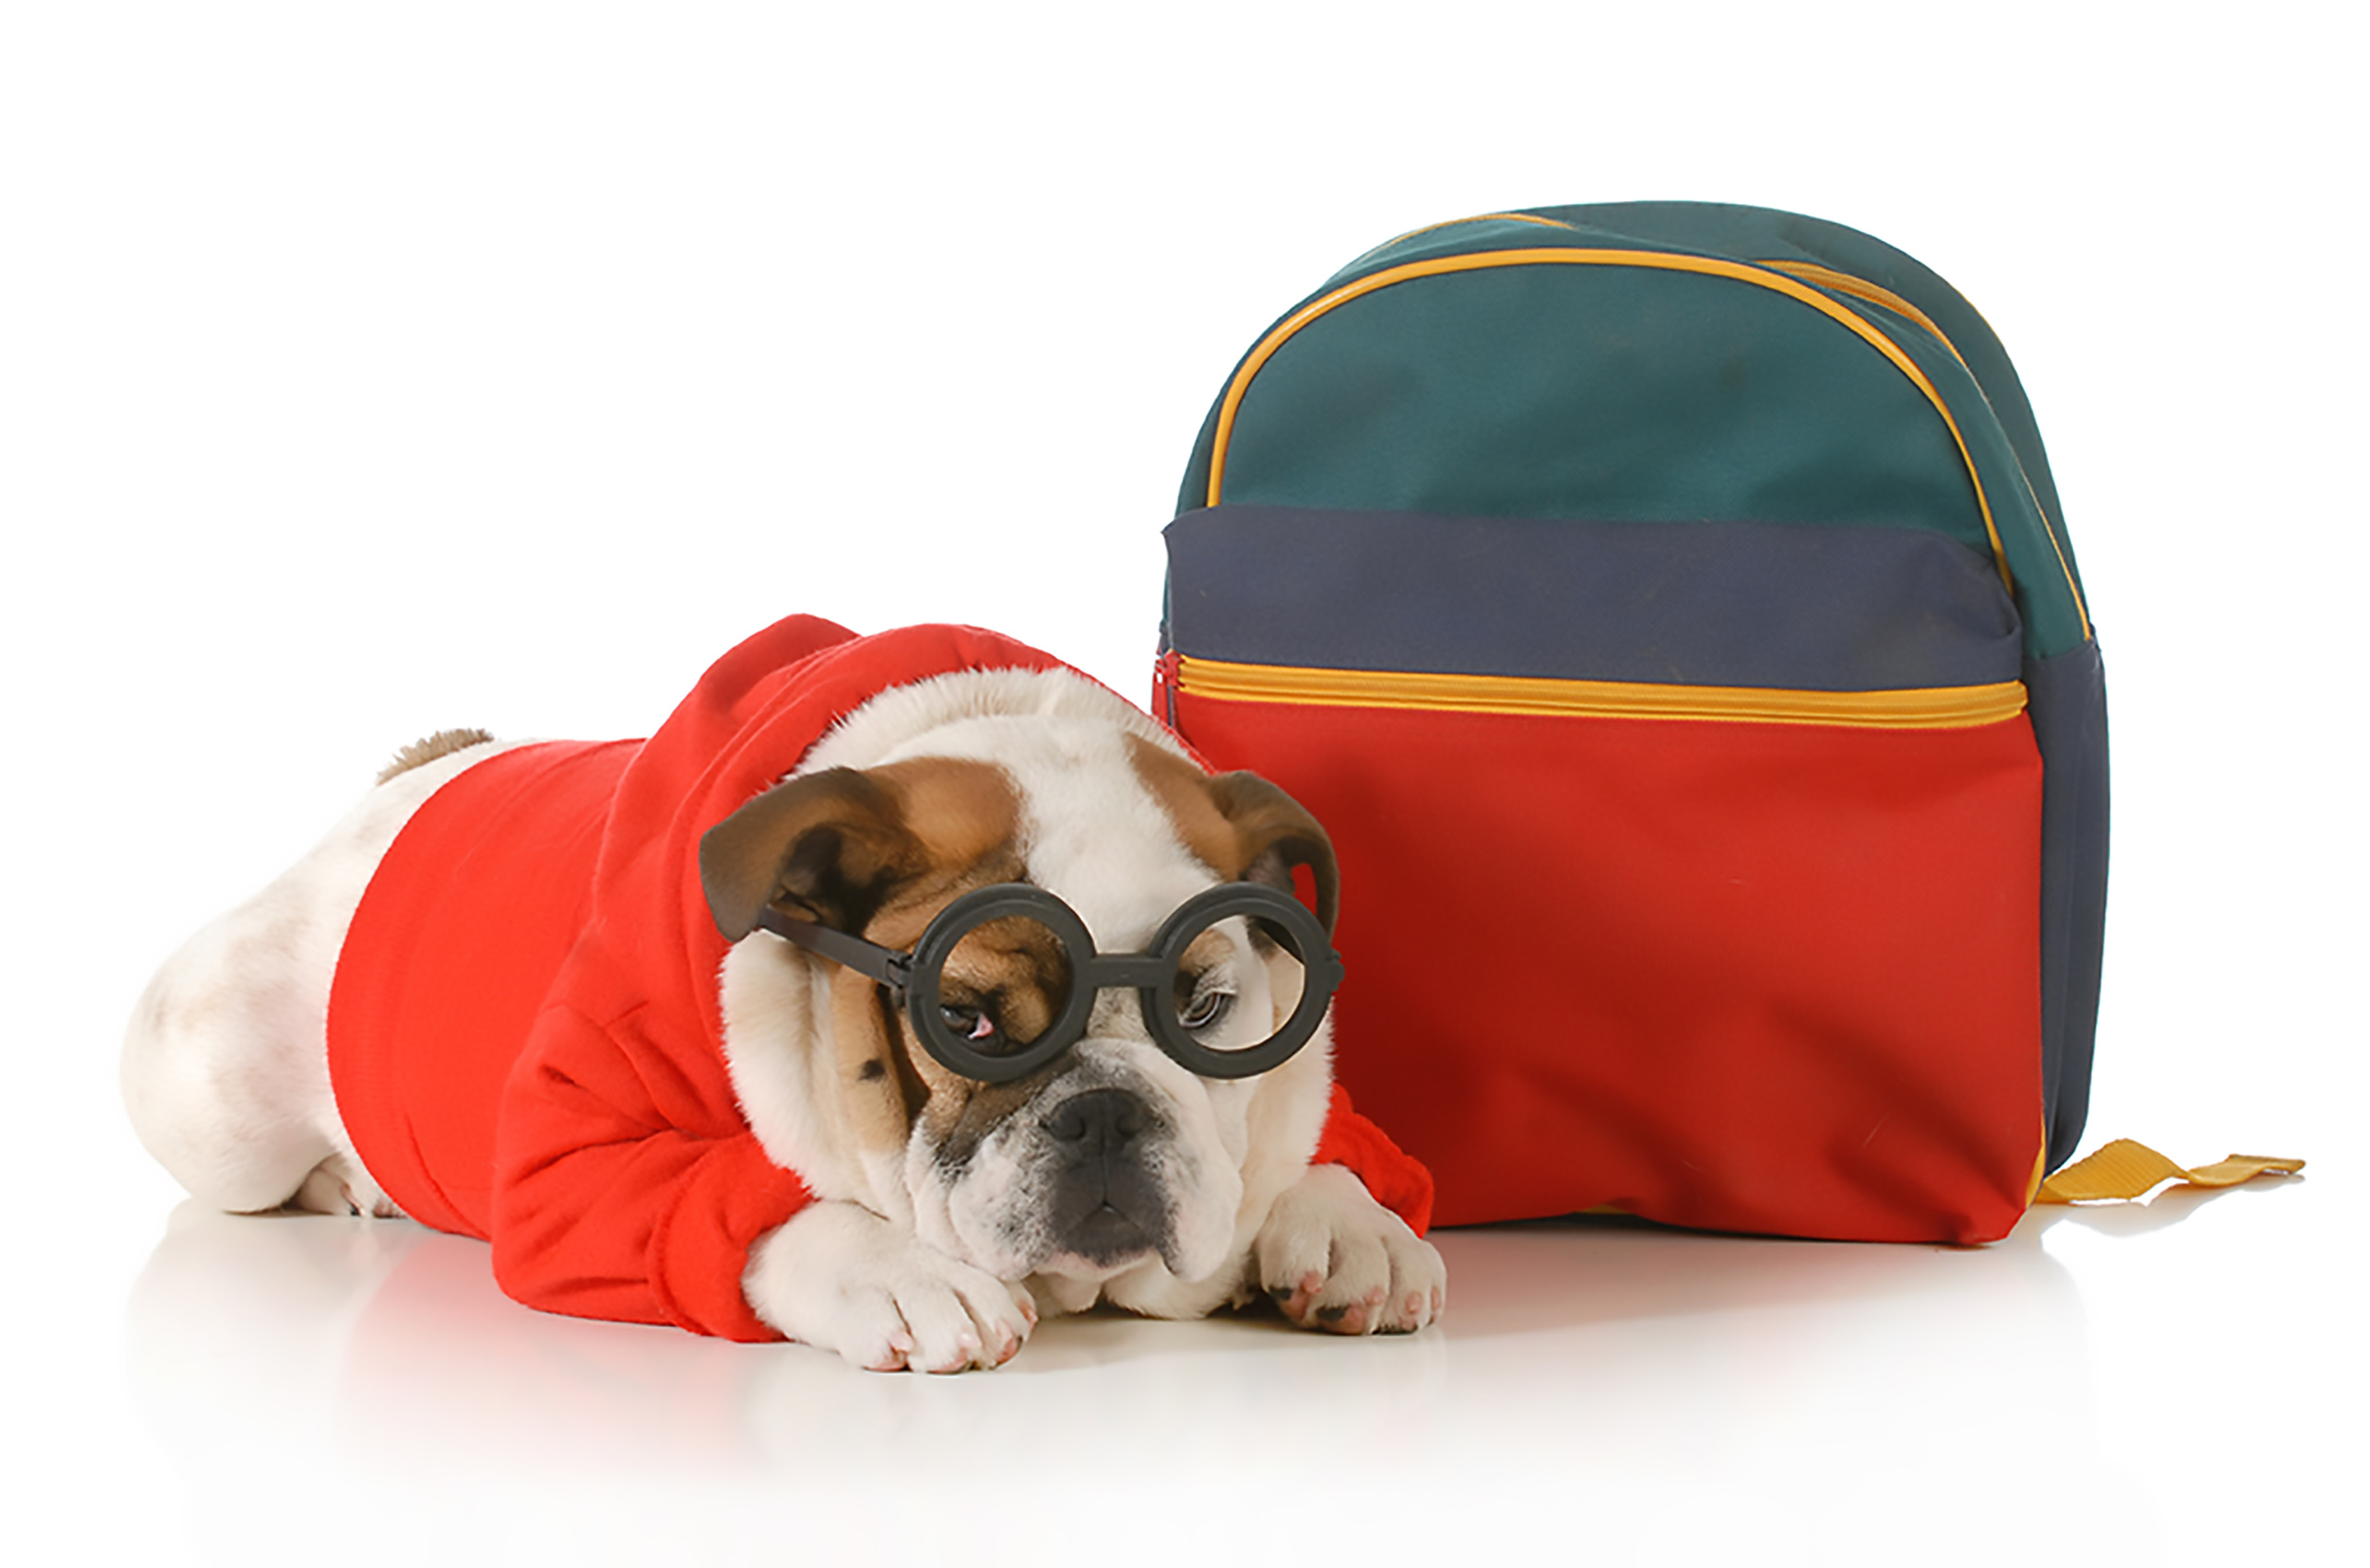 Cleanliness, comfort and happiness are hallmarks of our dog boarding service.